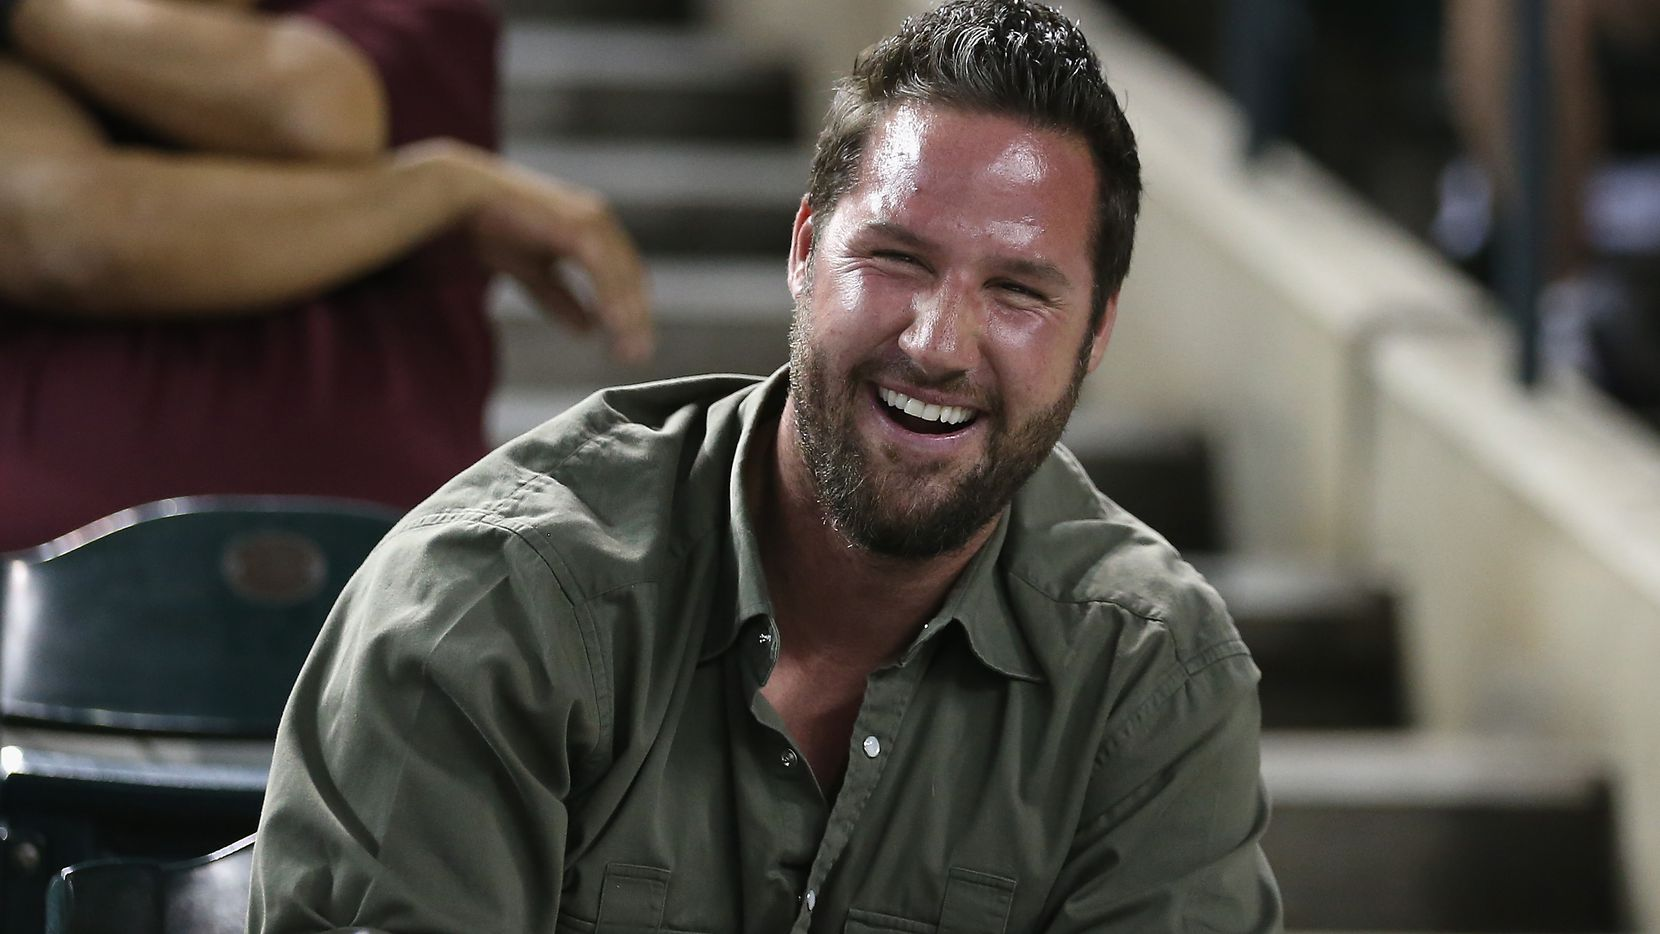 FILE - PHOENIX, AZ - APRIL 11, 2014:  Former Los Angeles Dodgers pitcher Eric Gagne is pictured at an Arizona Diamondbacks game at Chase Field on April 11, 2014, in Phoenix.  (Photo by Christian Petersen/Getty Images)